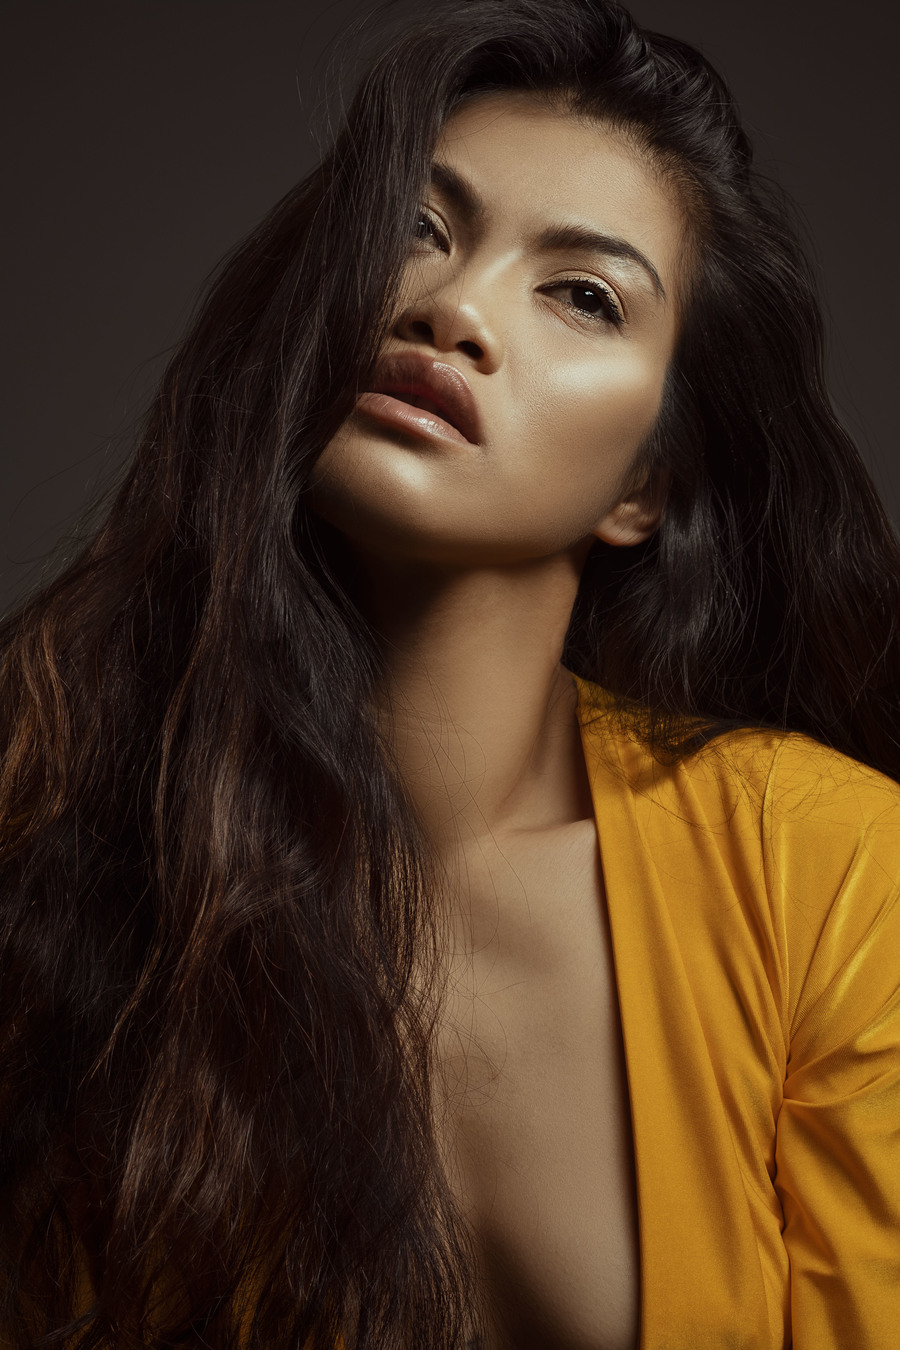 Mustard Beauty / Photography by Lauren Danielle Photography, Model Mia Resa, Makeup by Mia Resa, Post processing by Lauren Danielle Photography, Stylist Mia Resa, Taken at Lauren Danielle Photography, Hair styling by Mia Resa / Uploaded 13th September 2021 @ 08:45 PM